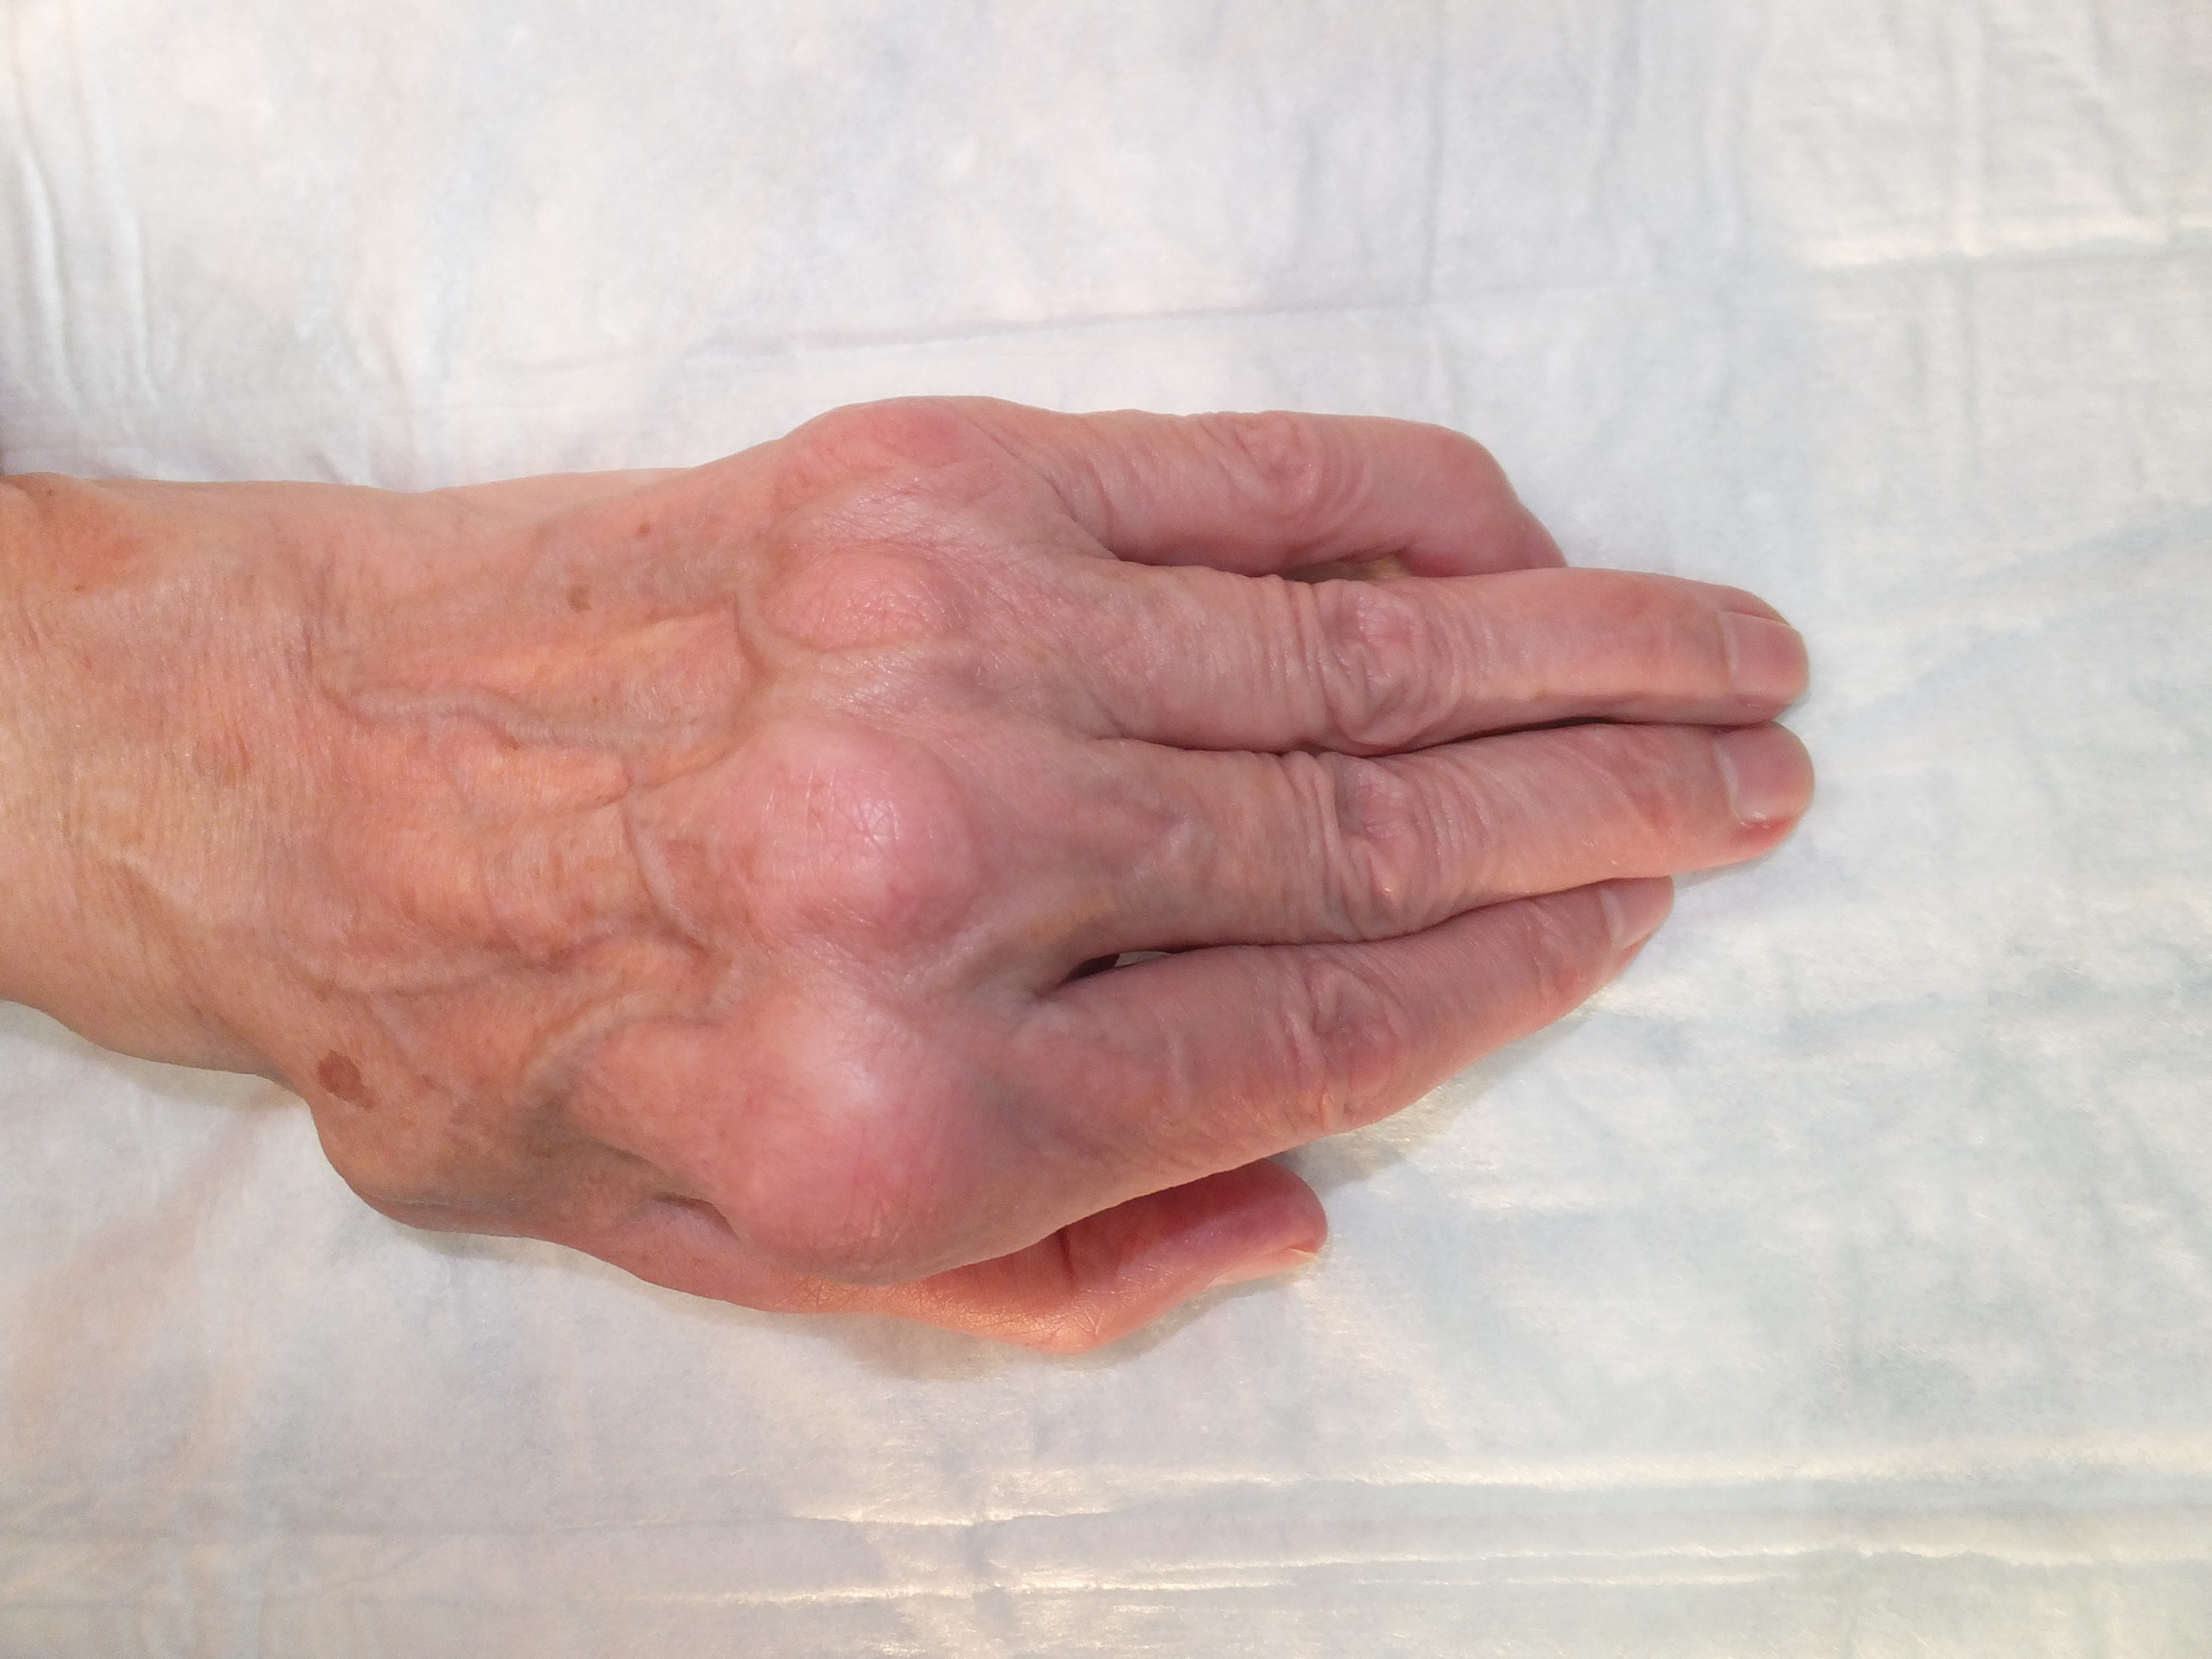 Wrist involvement in rheumatoid arthritis